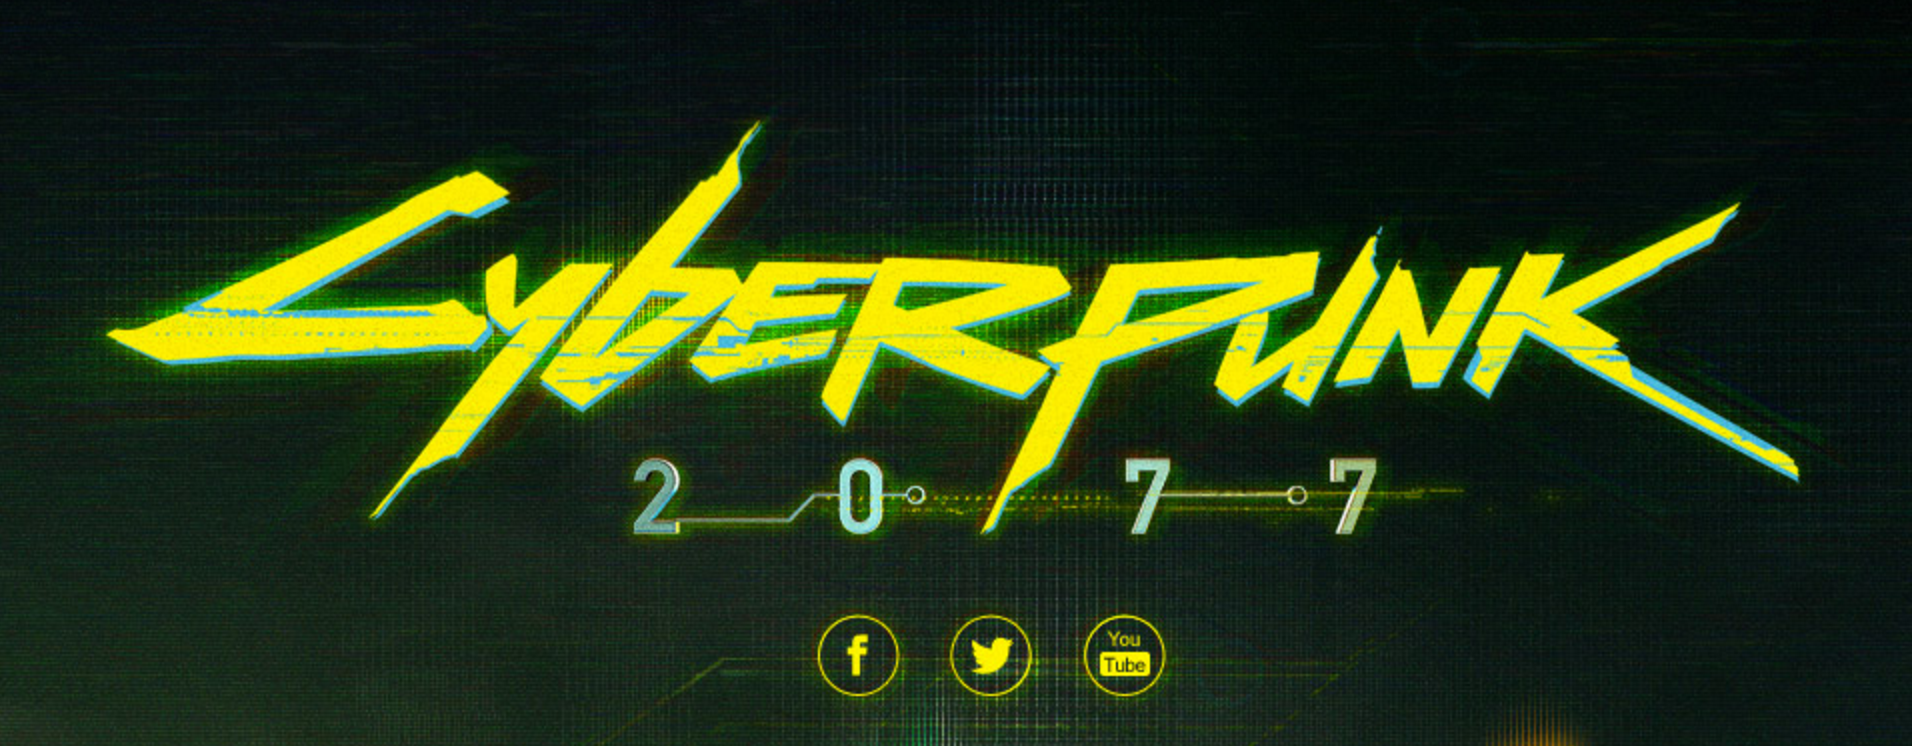 Cyberpunk 2077 game logo.